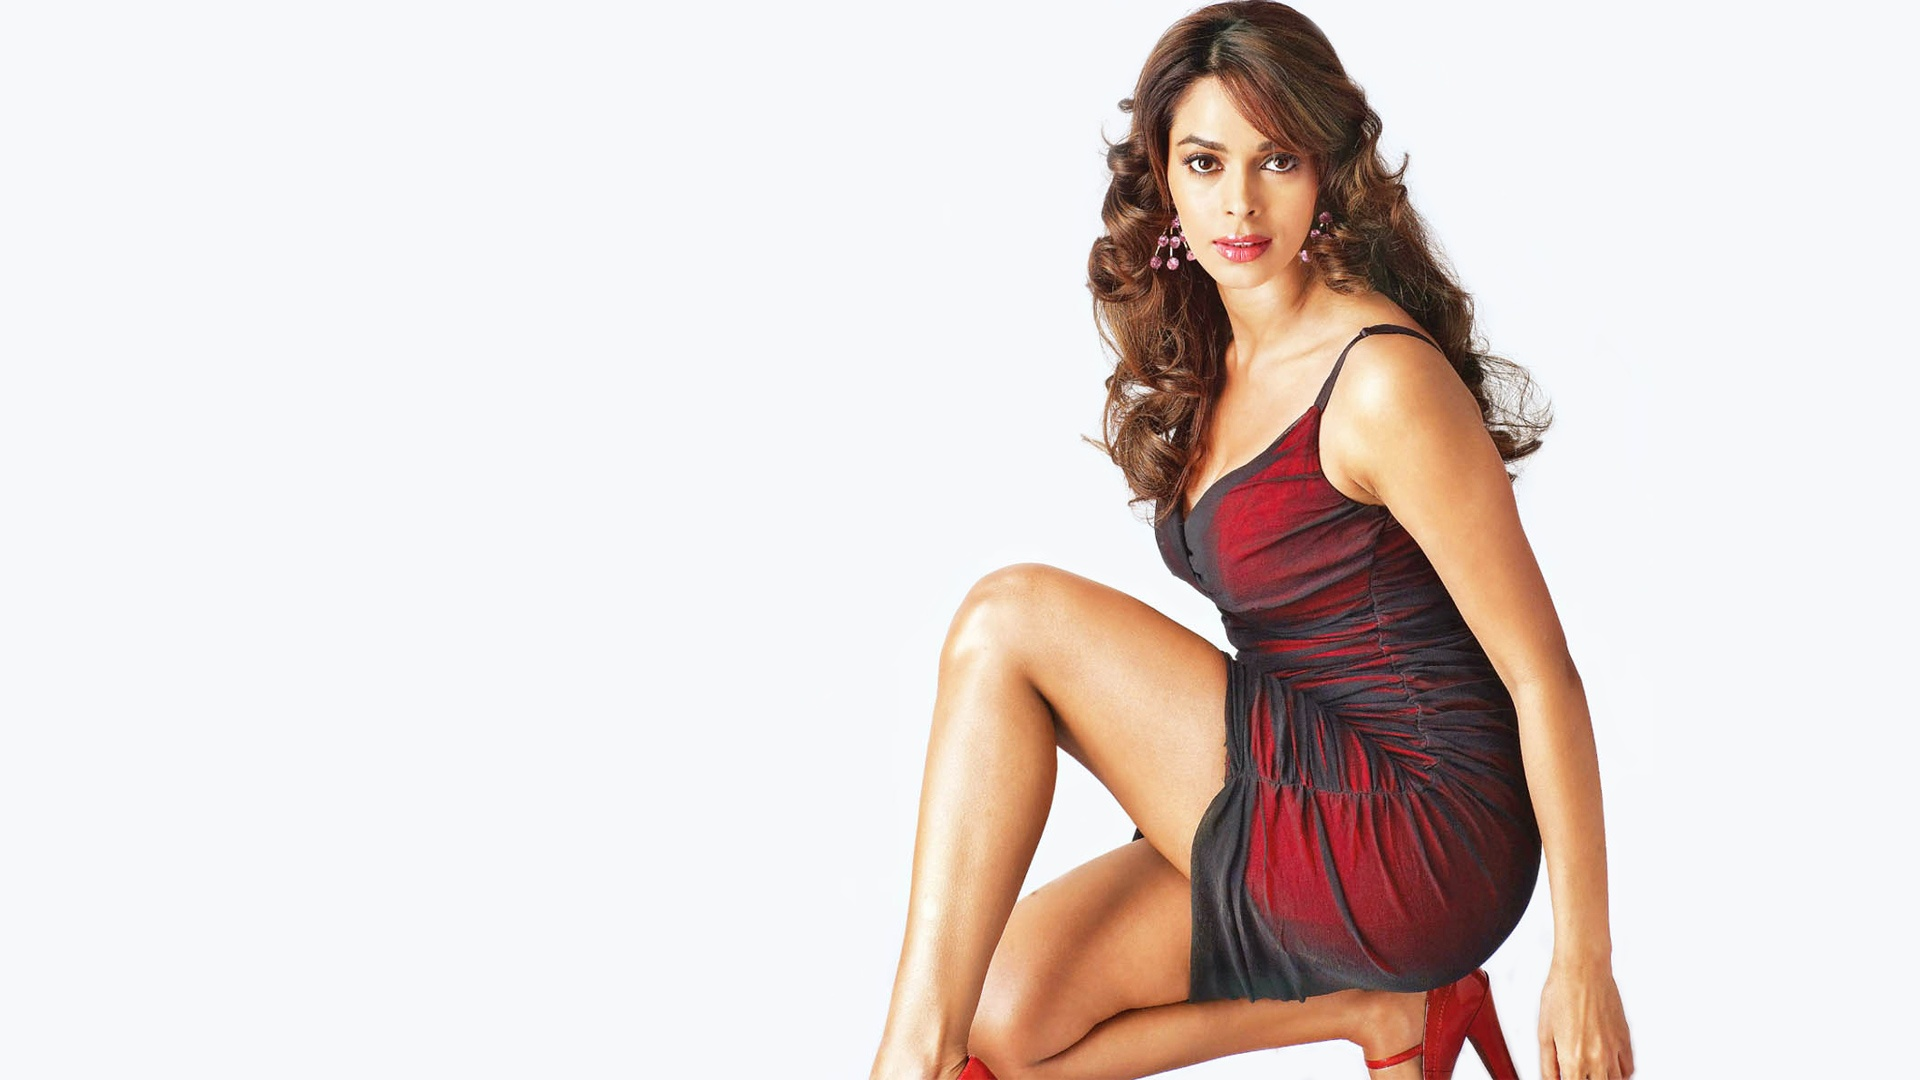 Mallika Sherawat Hot Bollywood Actress - Indian Bollywood Actress In Hot Image's - HD Wallpaper